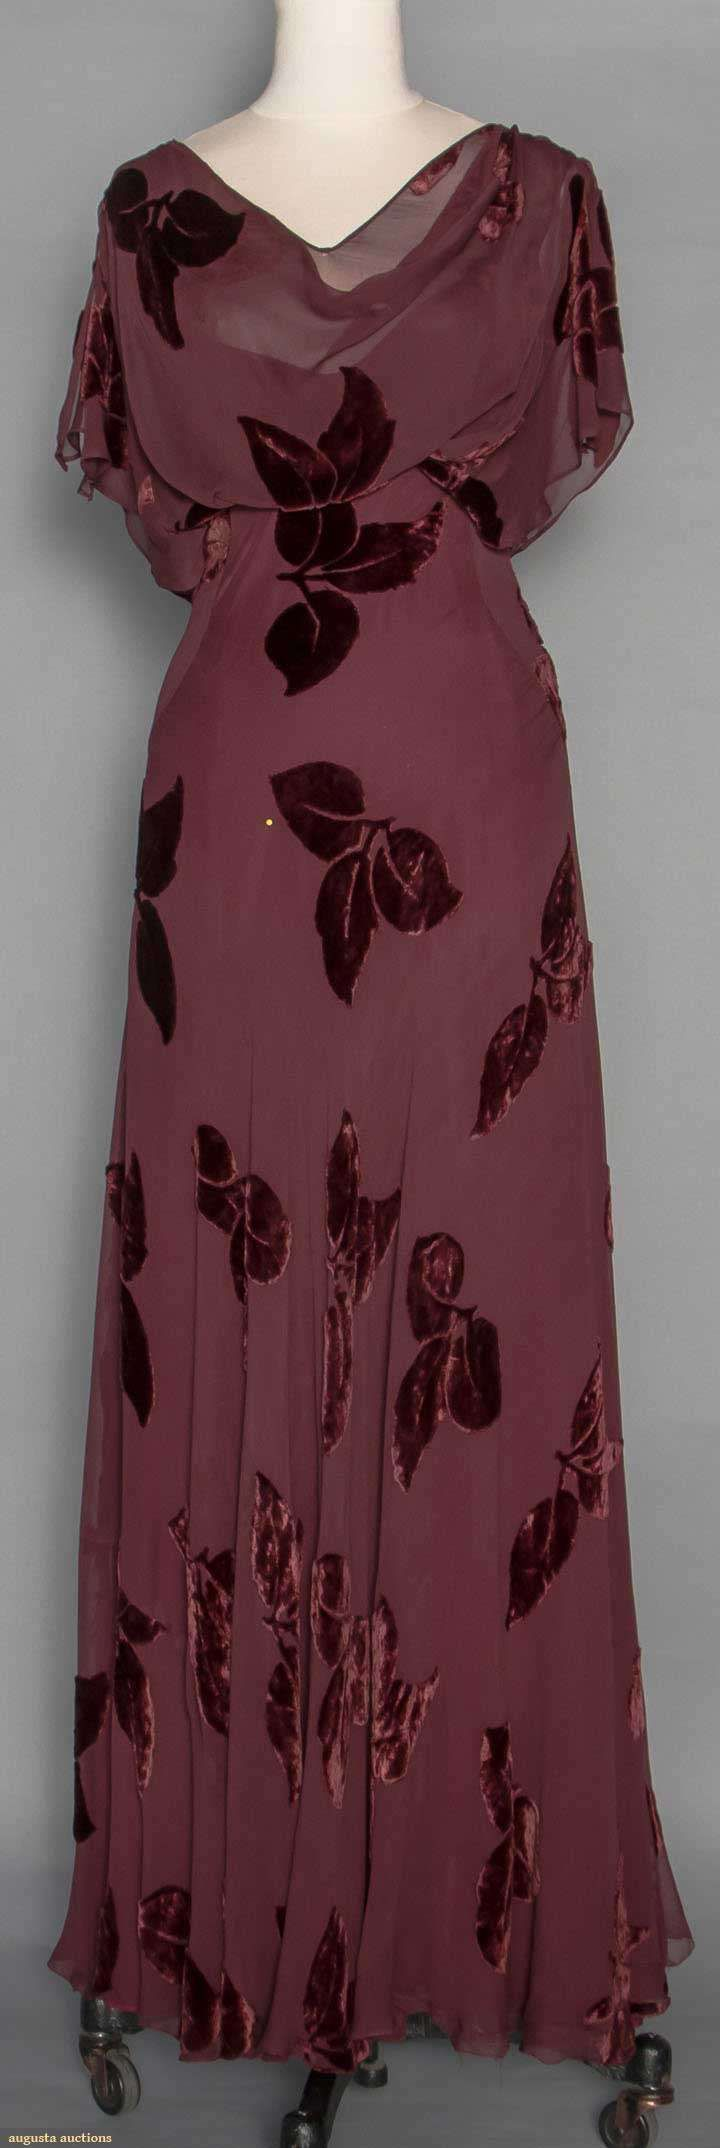 Cut Velvet Evening Gown, 1930s. For upcoming vintage and antique fashion and textile auction. #vintage #1930s